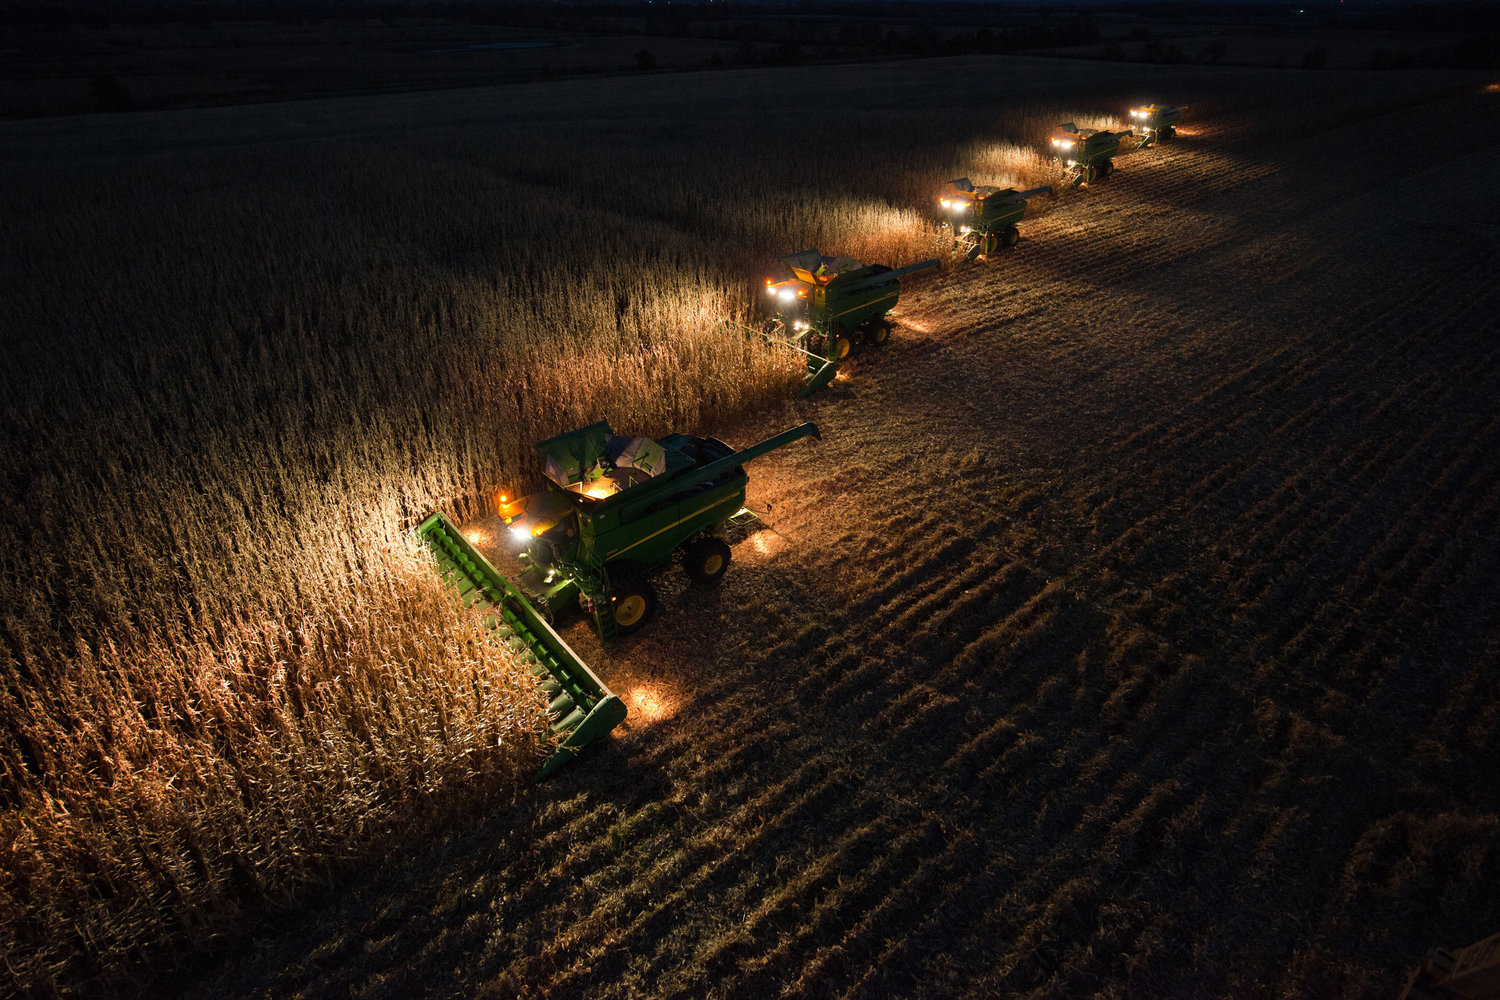 10 Night Farming Photos That Show Production Doesn T Stop